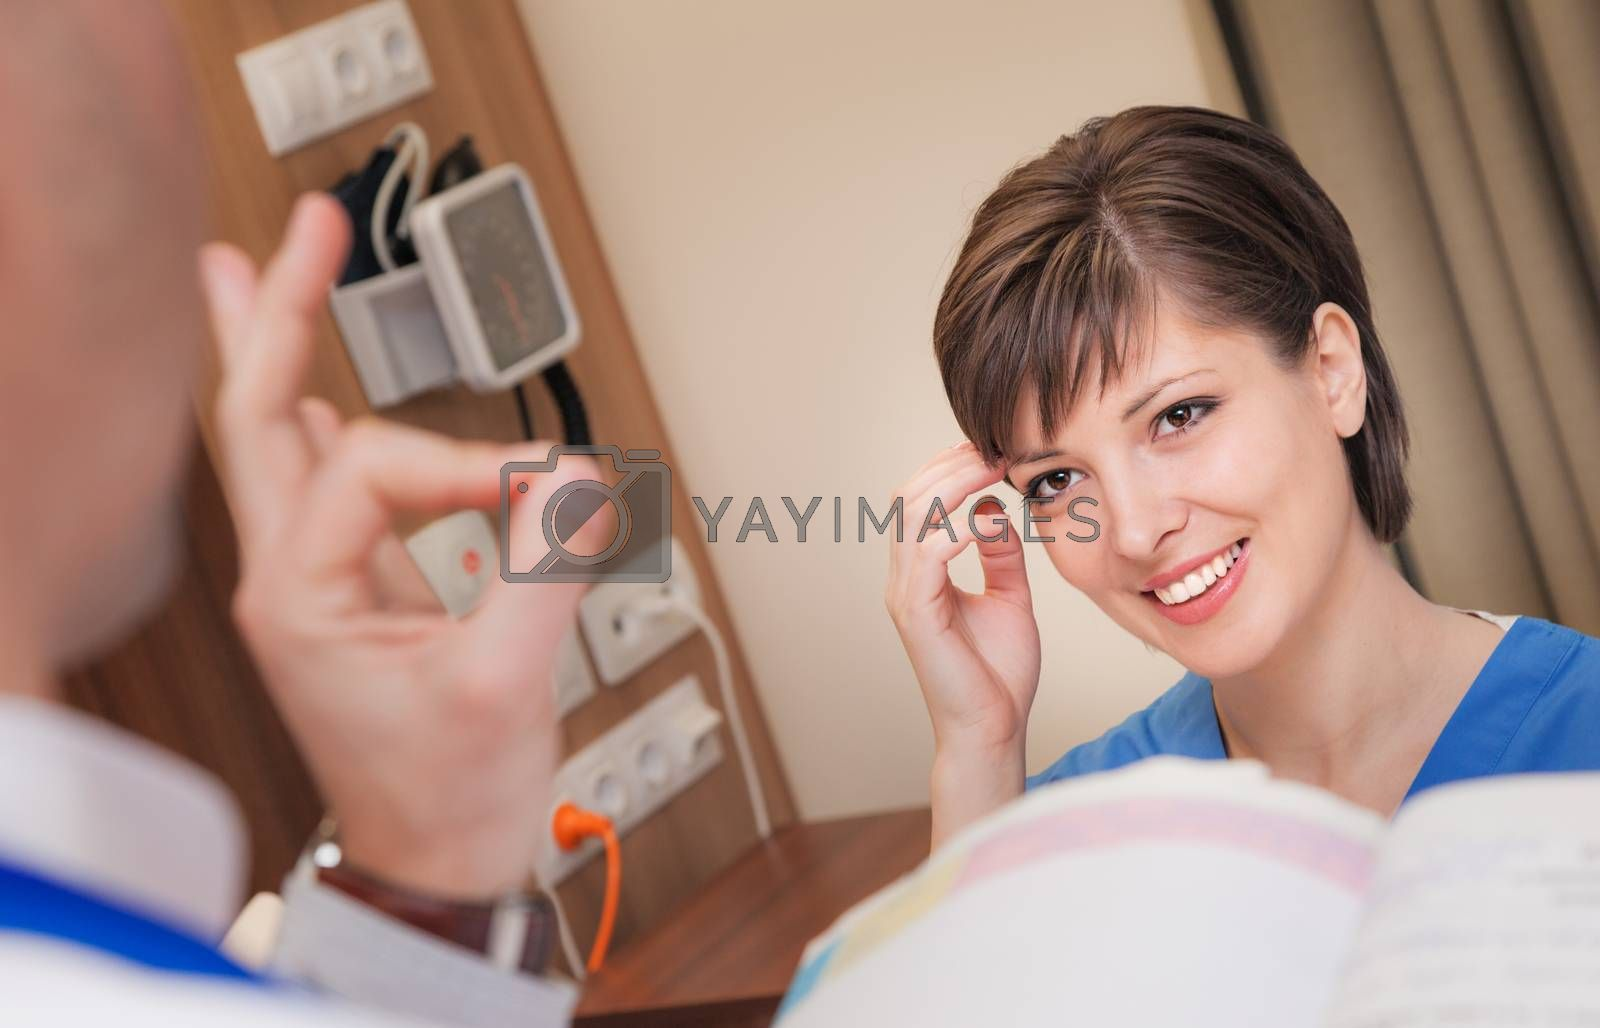 A doctor is showing an OK sign to a smiling beautiful young female patient in hospital room.